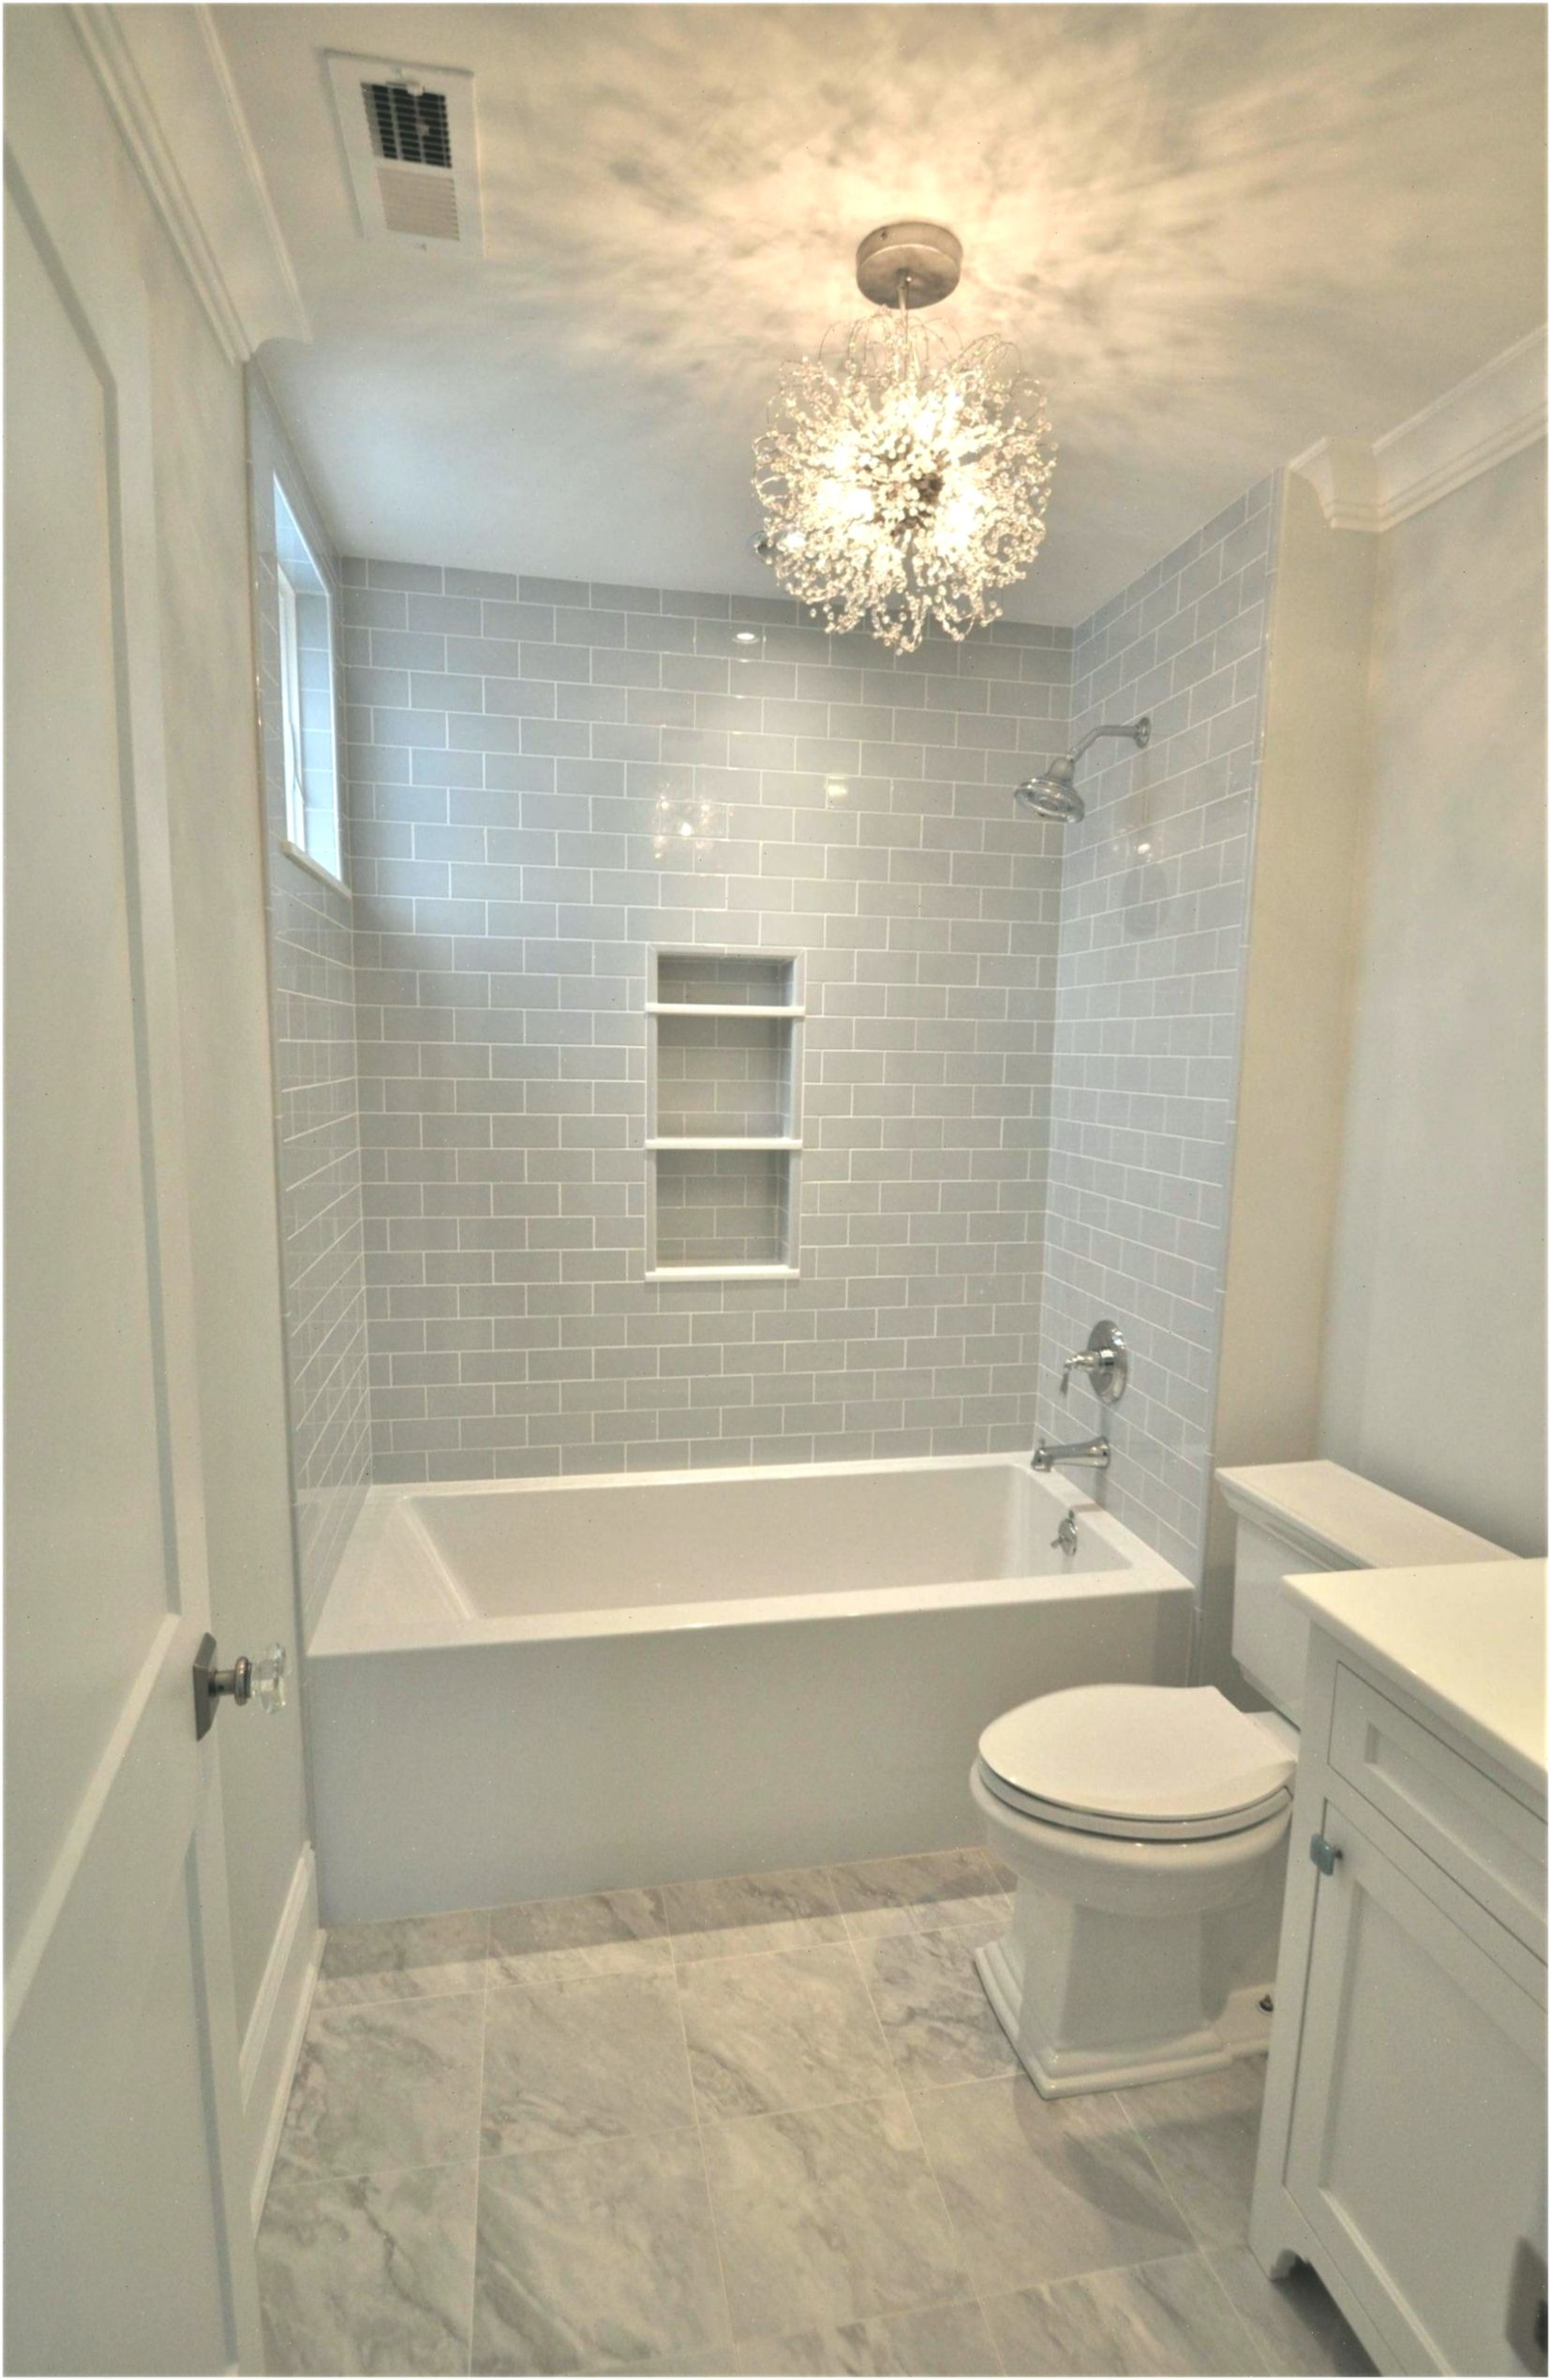 Small Bathroom Ideas With Tub Shower Combo Wenimenet Bathroom - Bathtub Shower Combo For Small Spaces